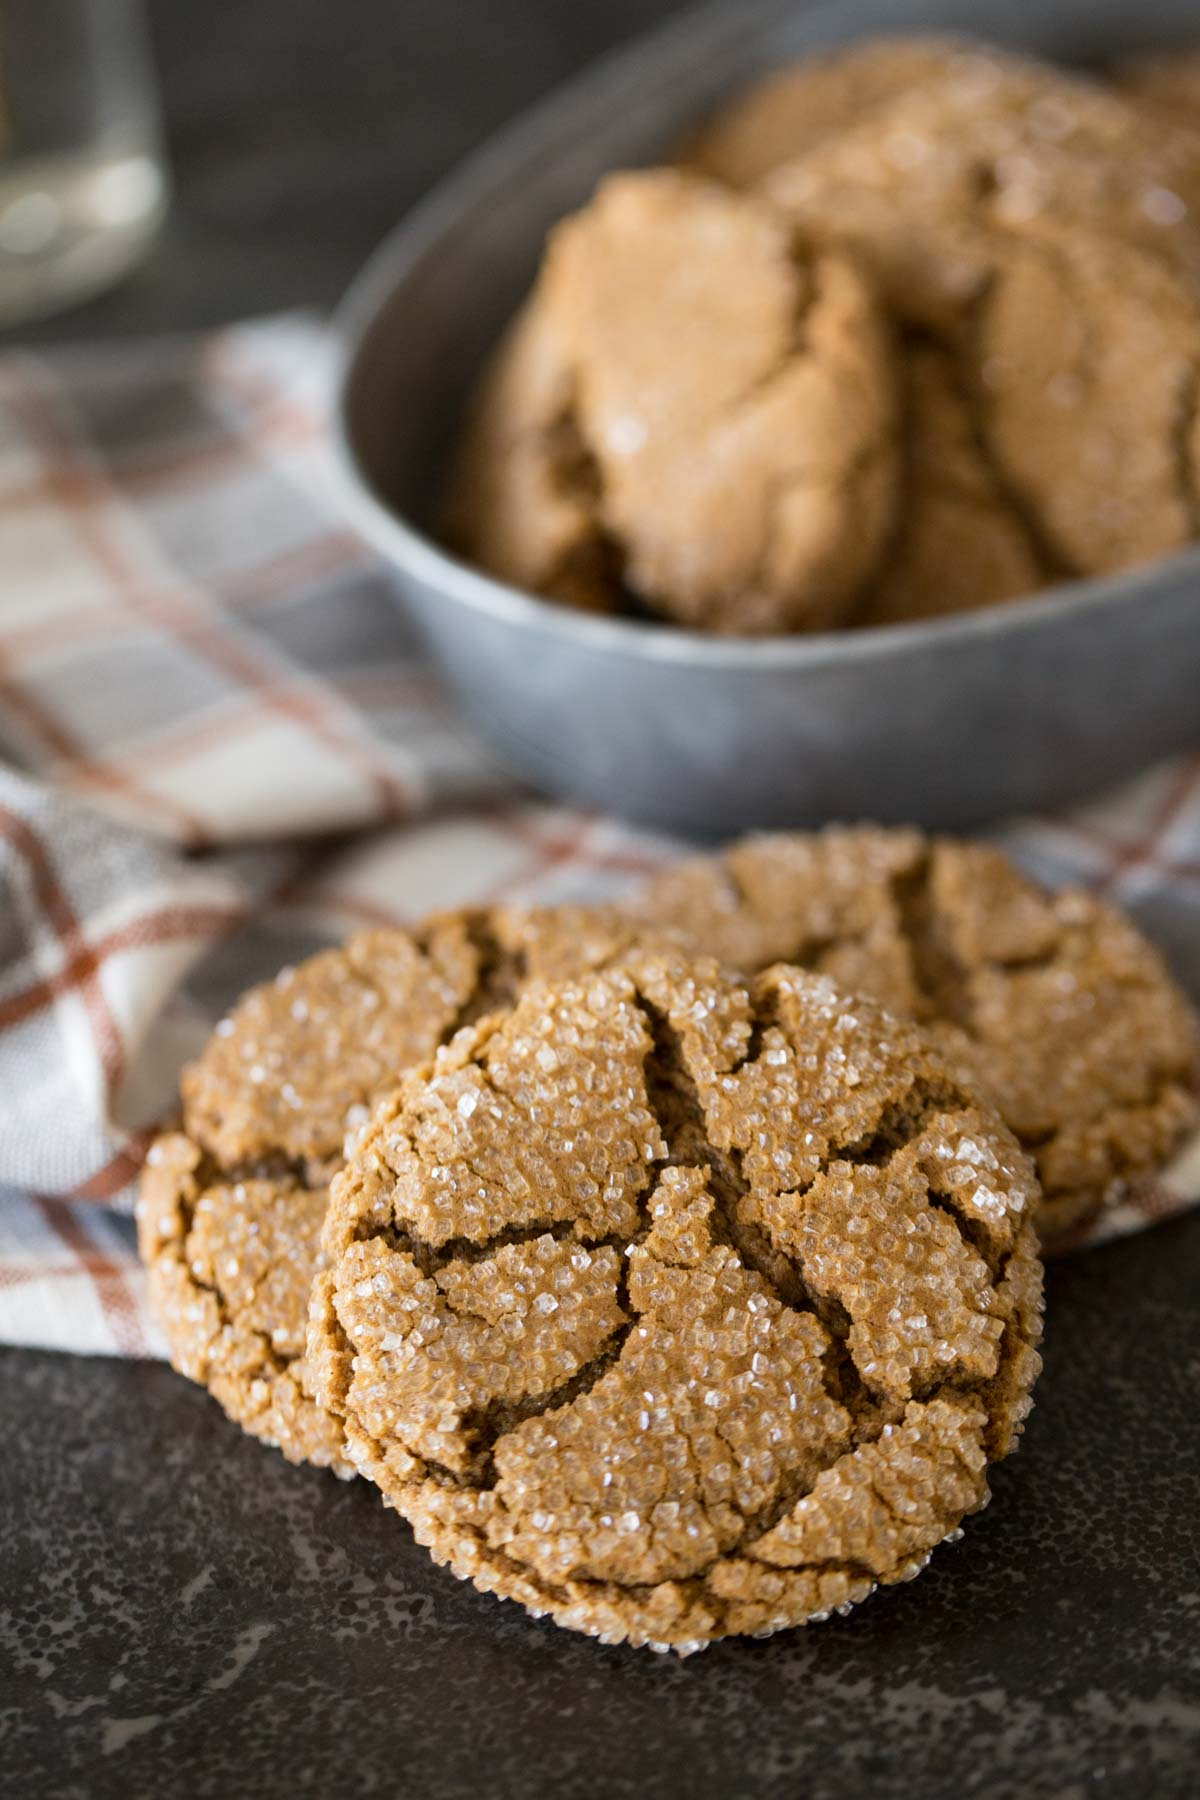 Three Peanut Butter Molasses Cookies with more cookies in a galvanized bowl in the background.